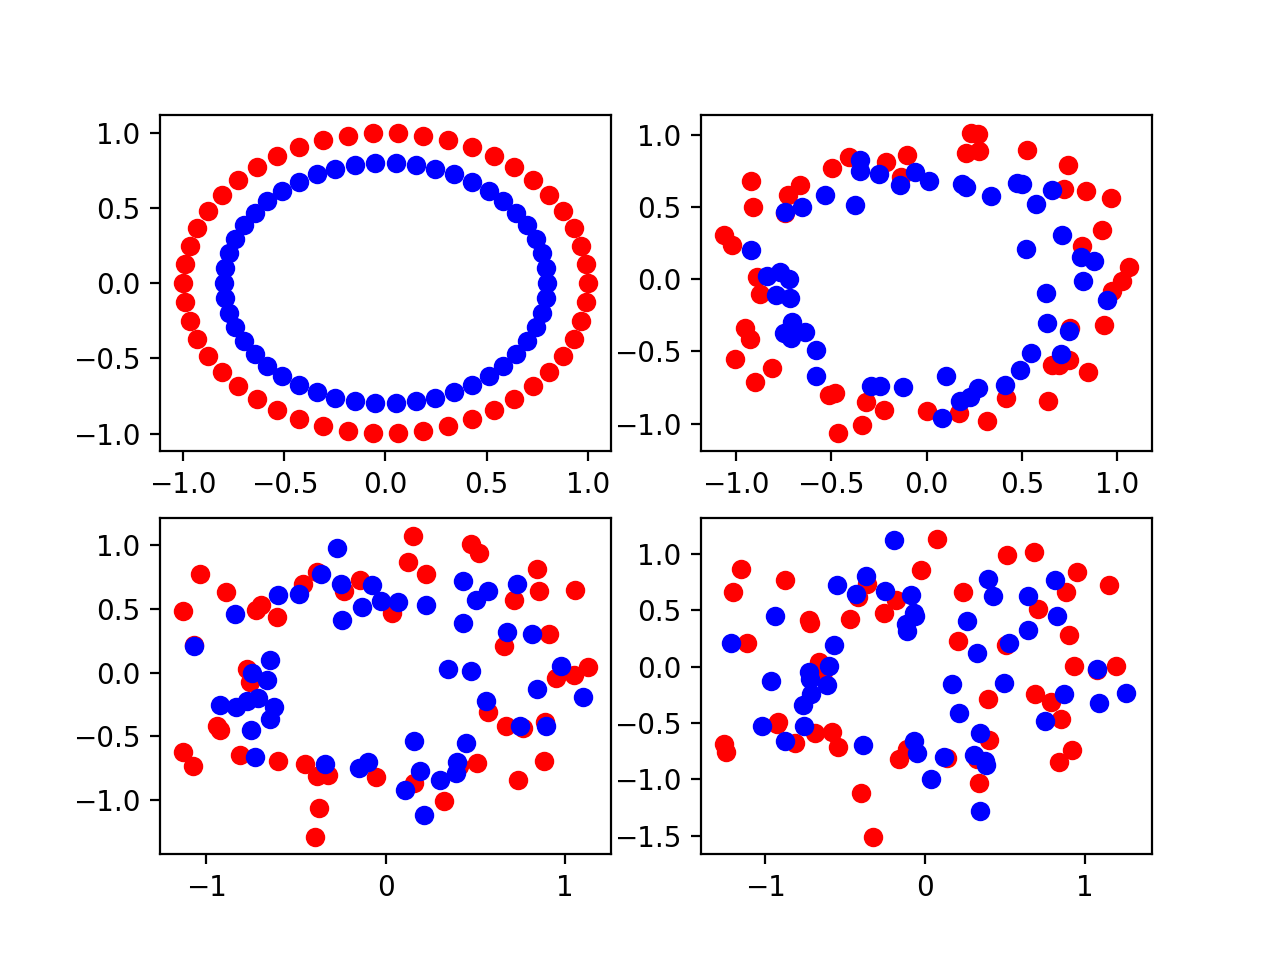 Four Scatter Plots of the Circles Dataset Varied by the Amount of Statistical Noise